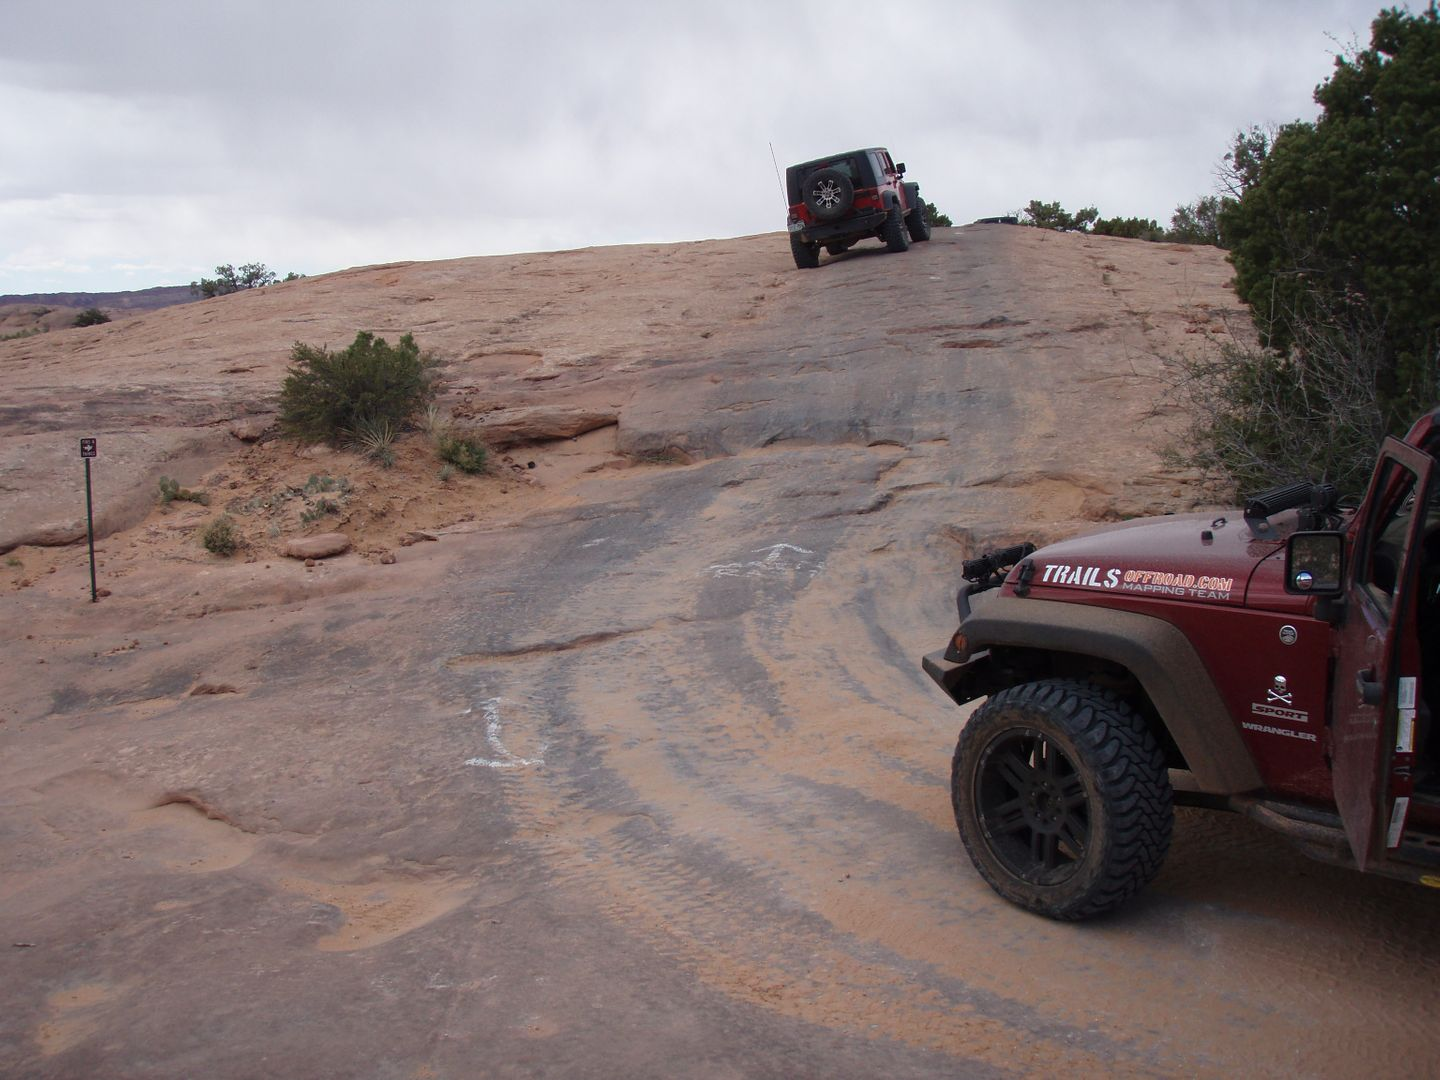 Fins and Things - Waypoint 13: Intersection - Overlook Spur